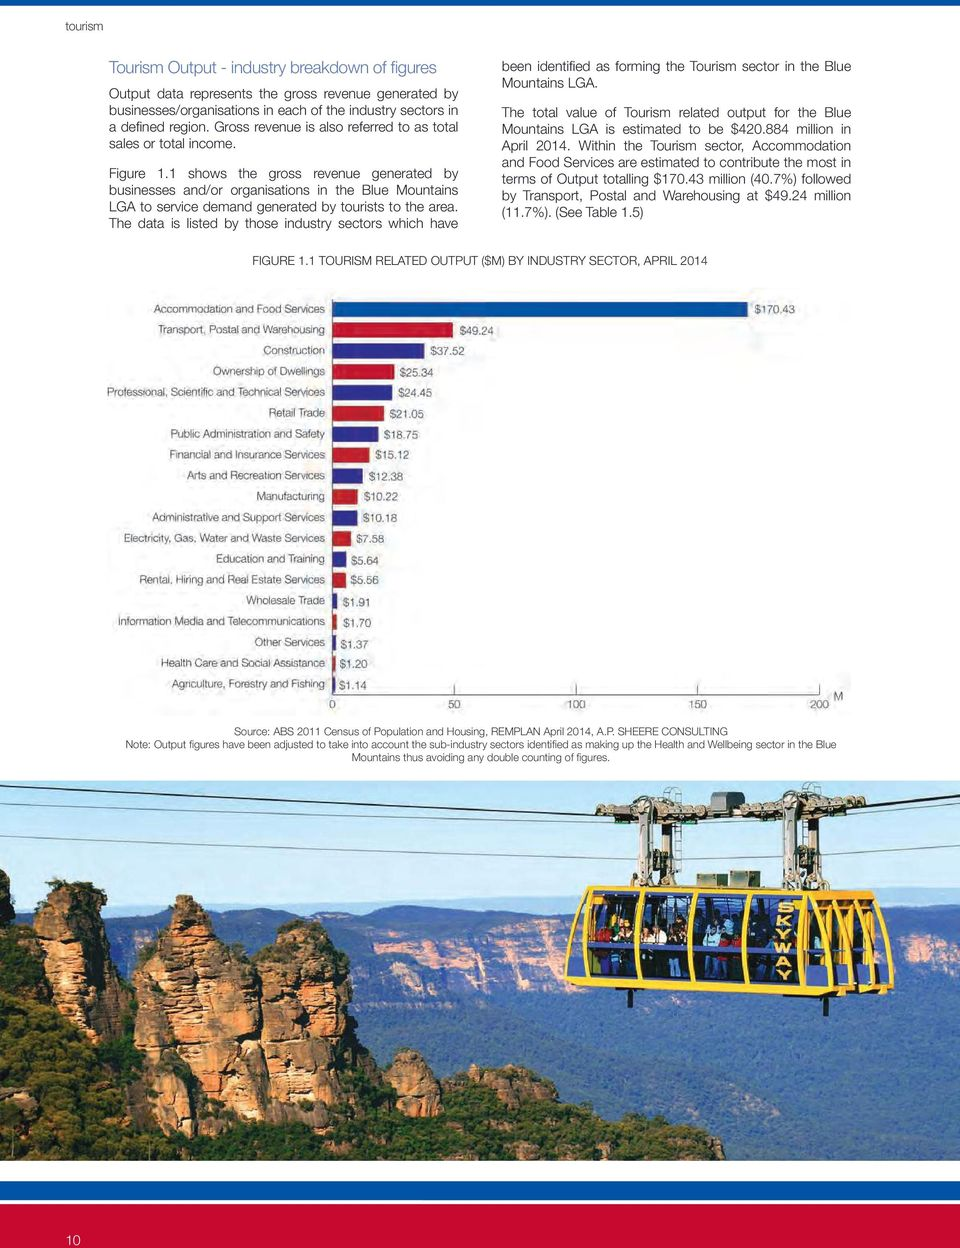 1 shows the gross revenue generated by businesses and/or organisations in the Blue Mountains LGA to service demand generated by tourists to the area.